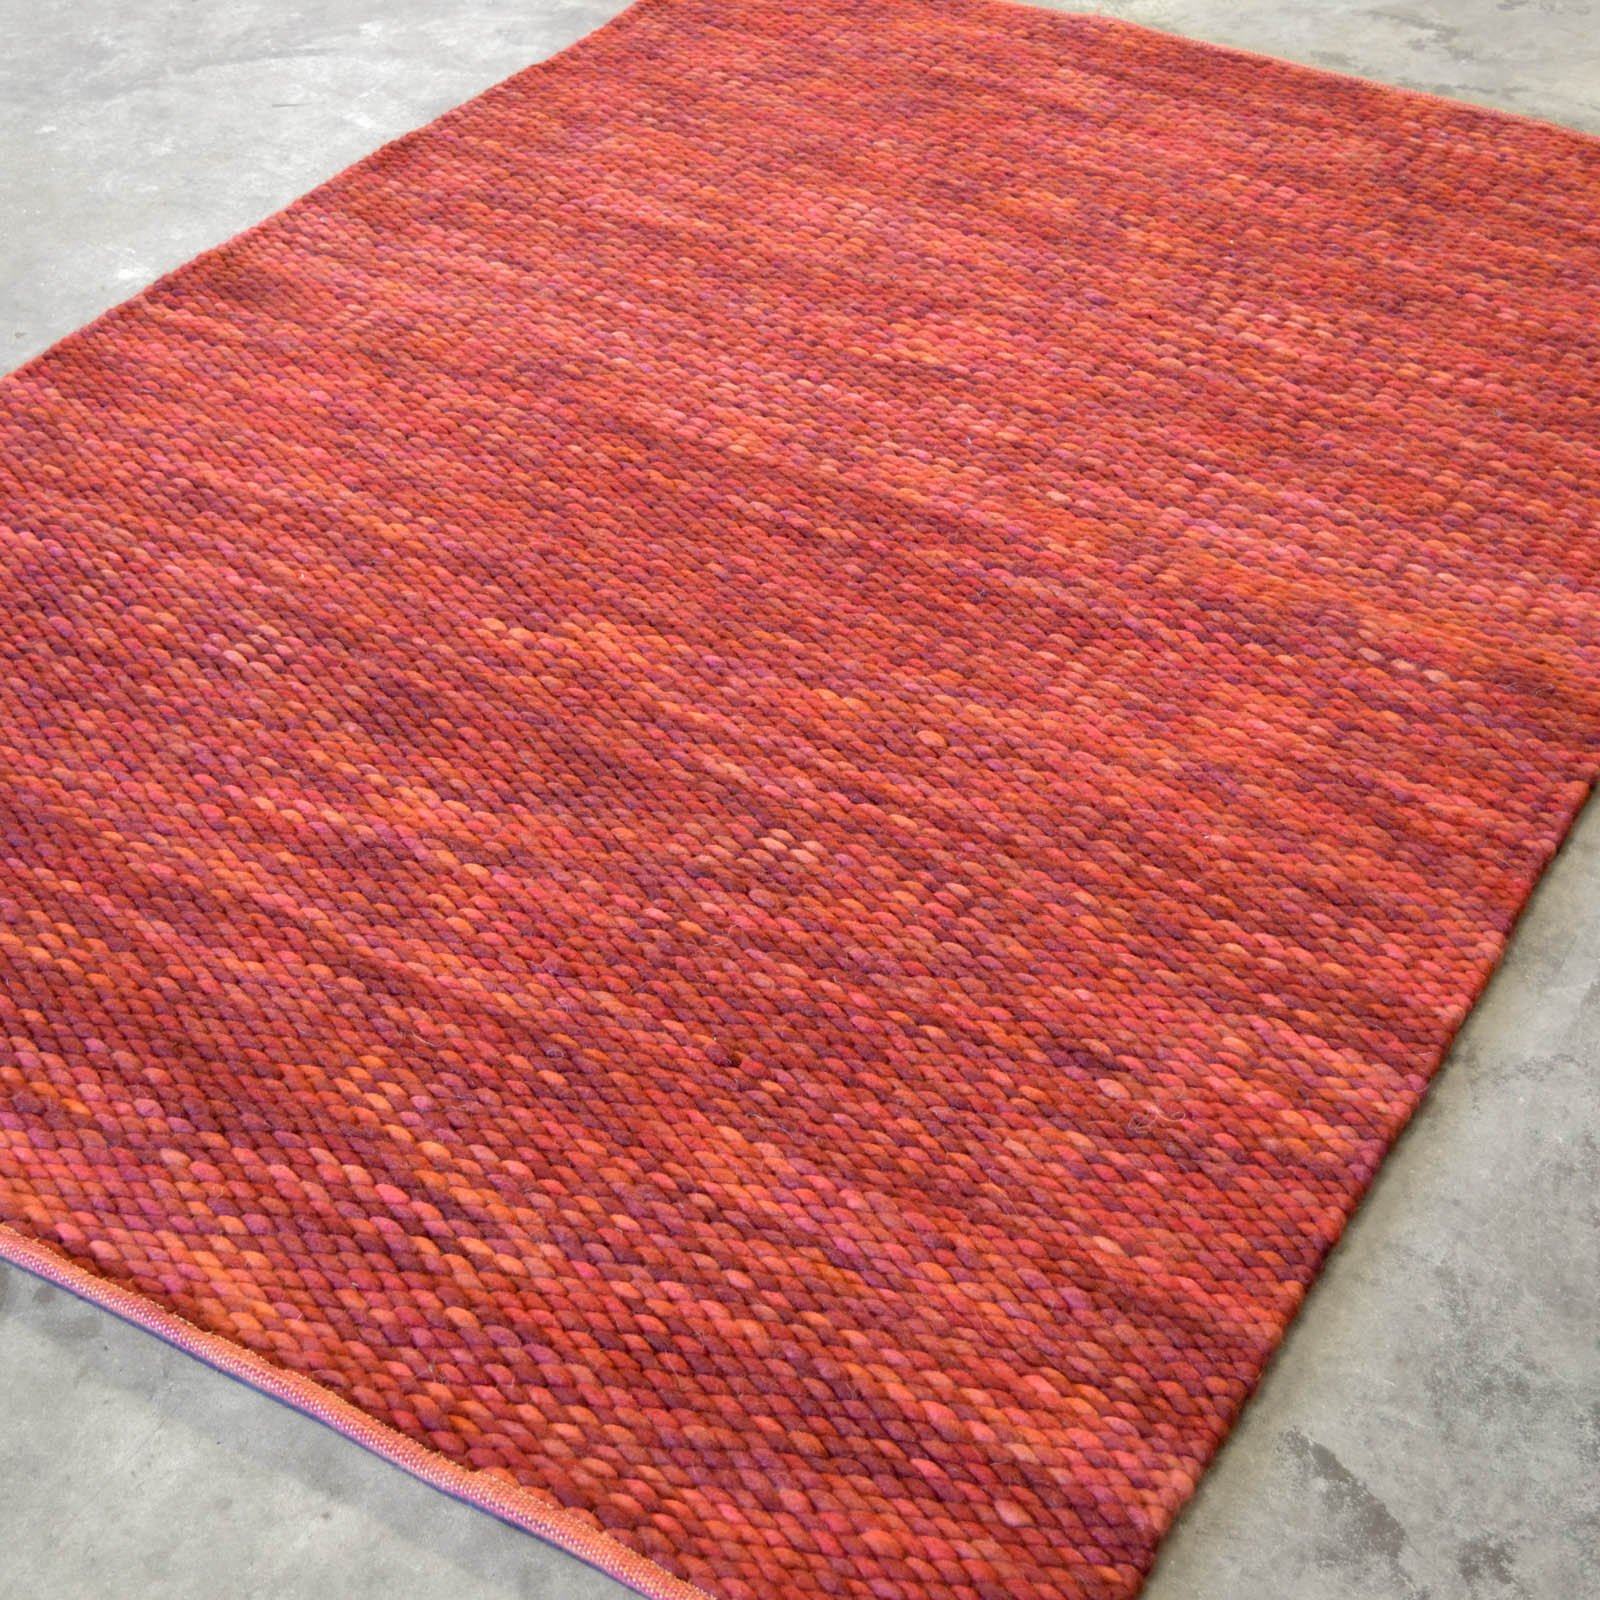 Pinto Rugs 29600 by Brink and Campman